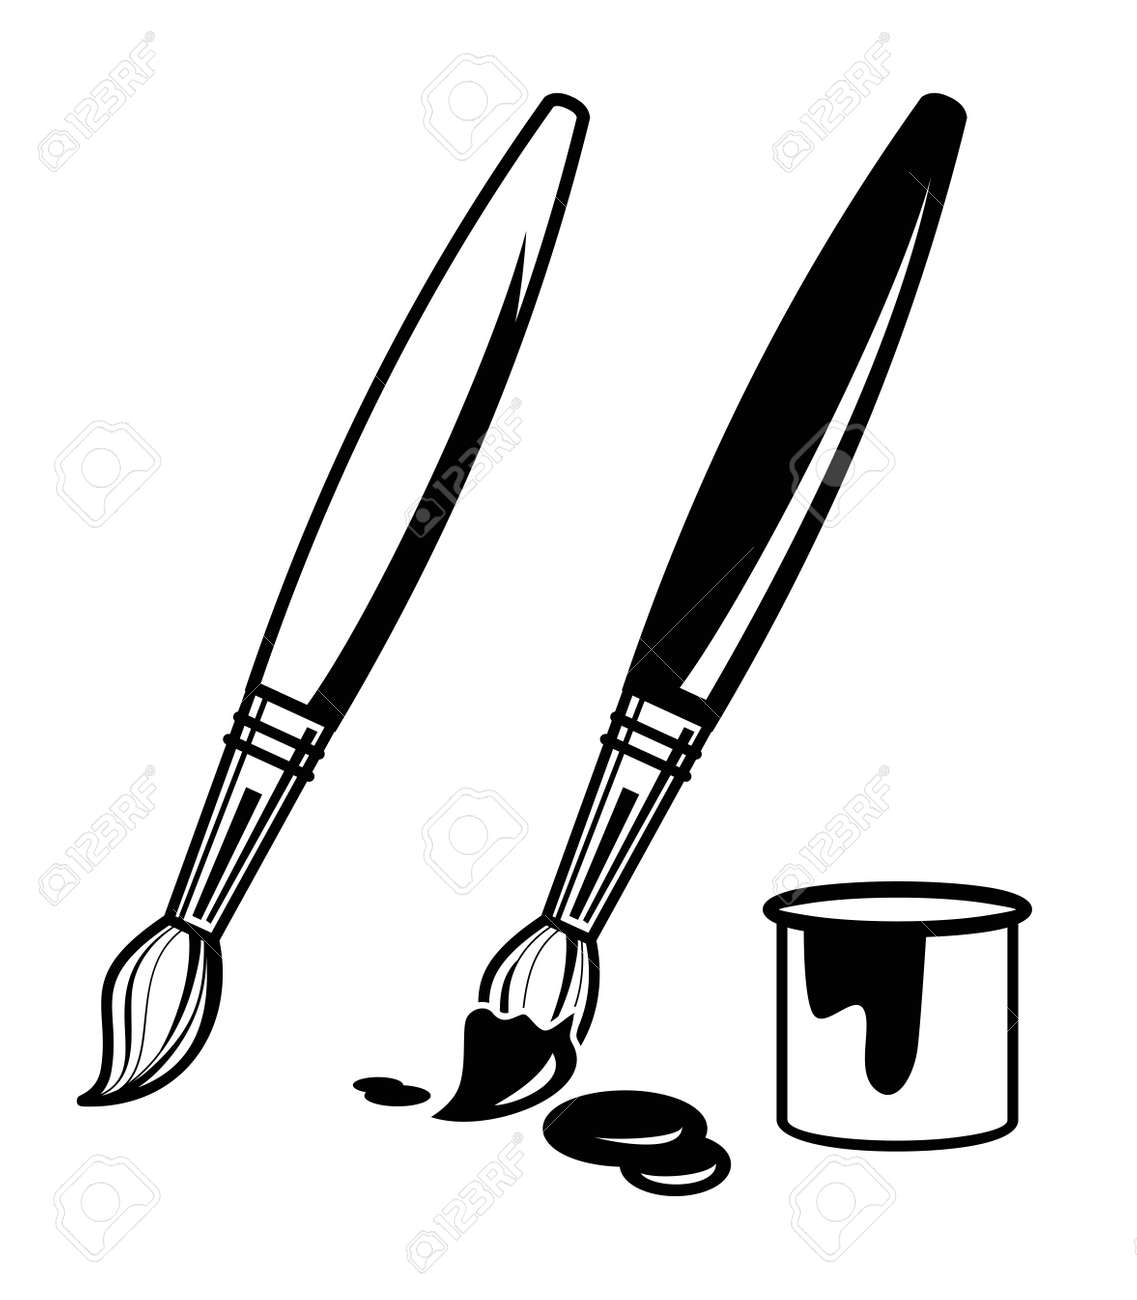 vector black paint brush icon on white background royalty free rh 123rf com paint brush vector graphics paint brush vector graphics